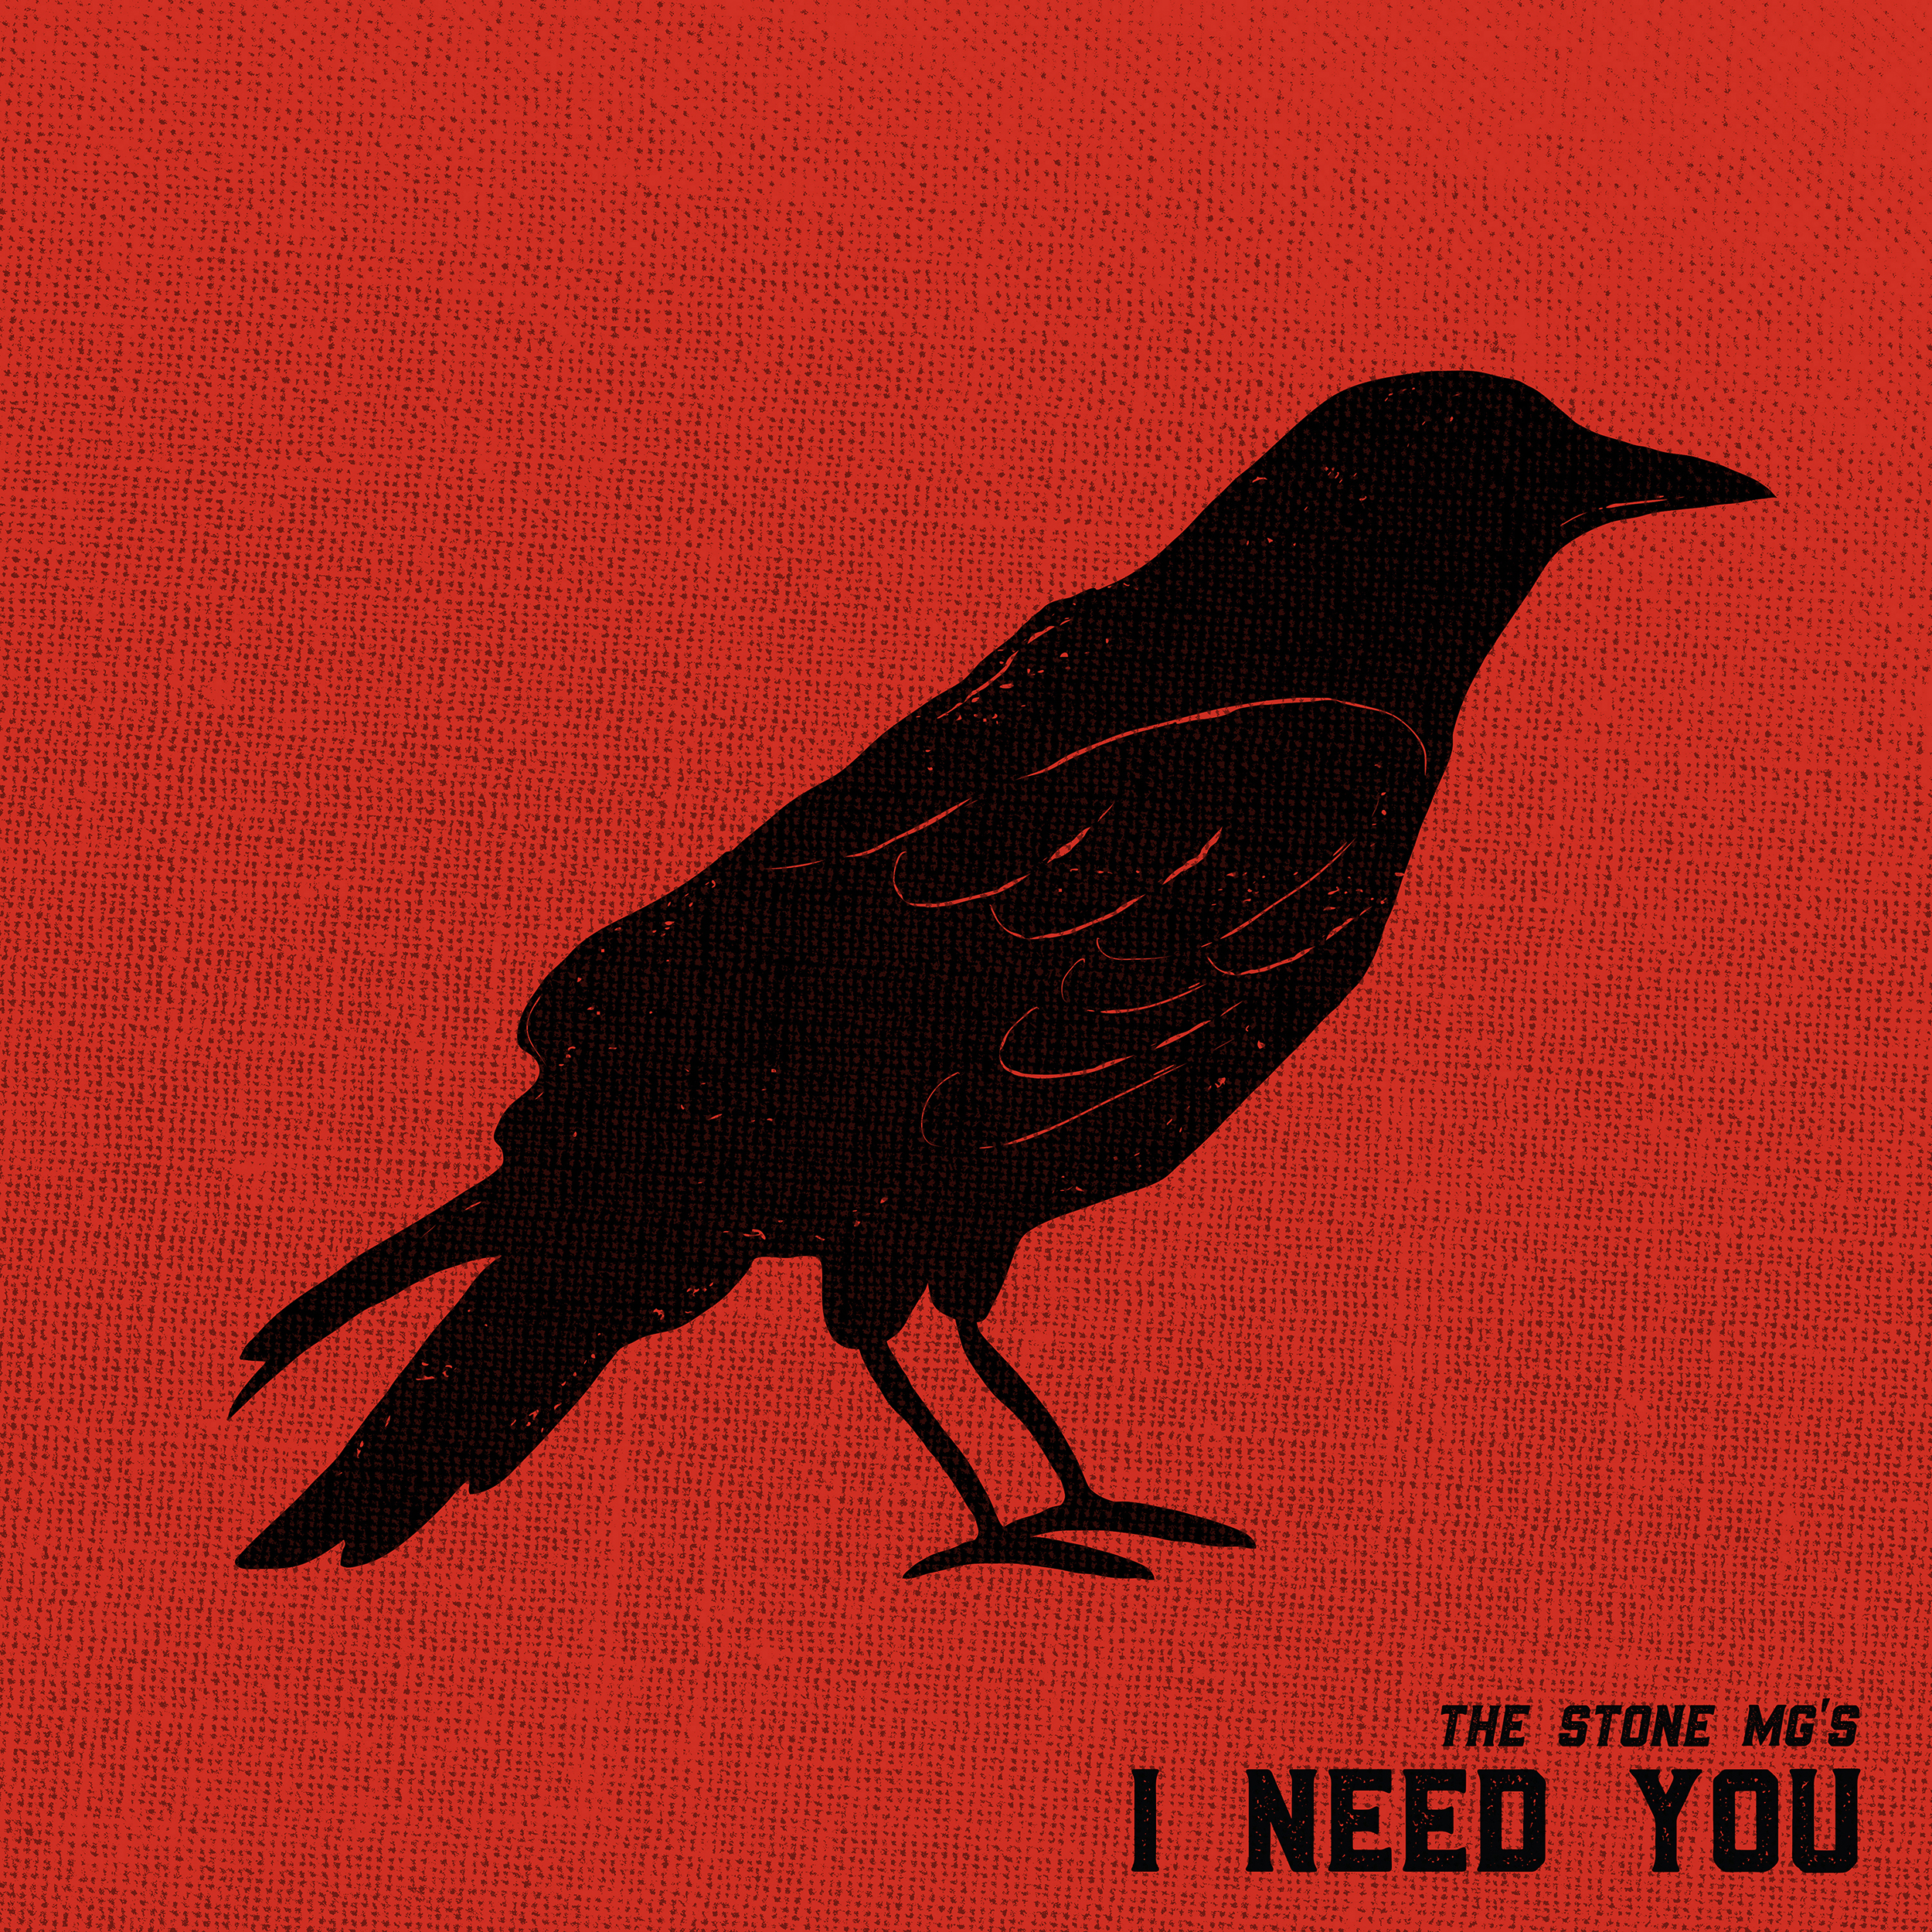 The Stone MGs I Need You Single Cover